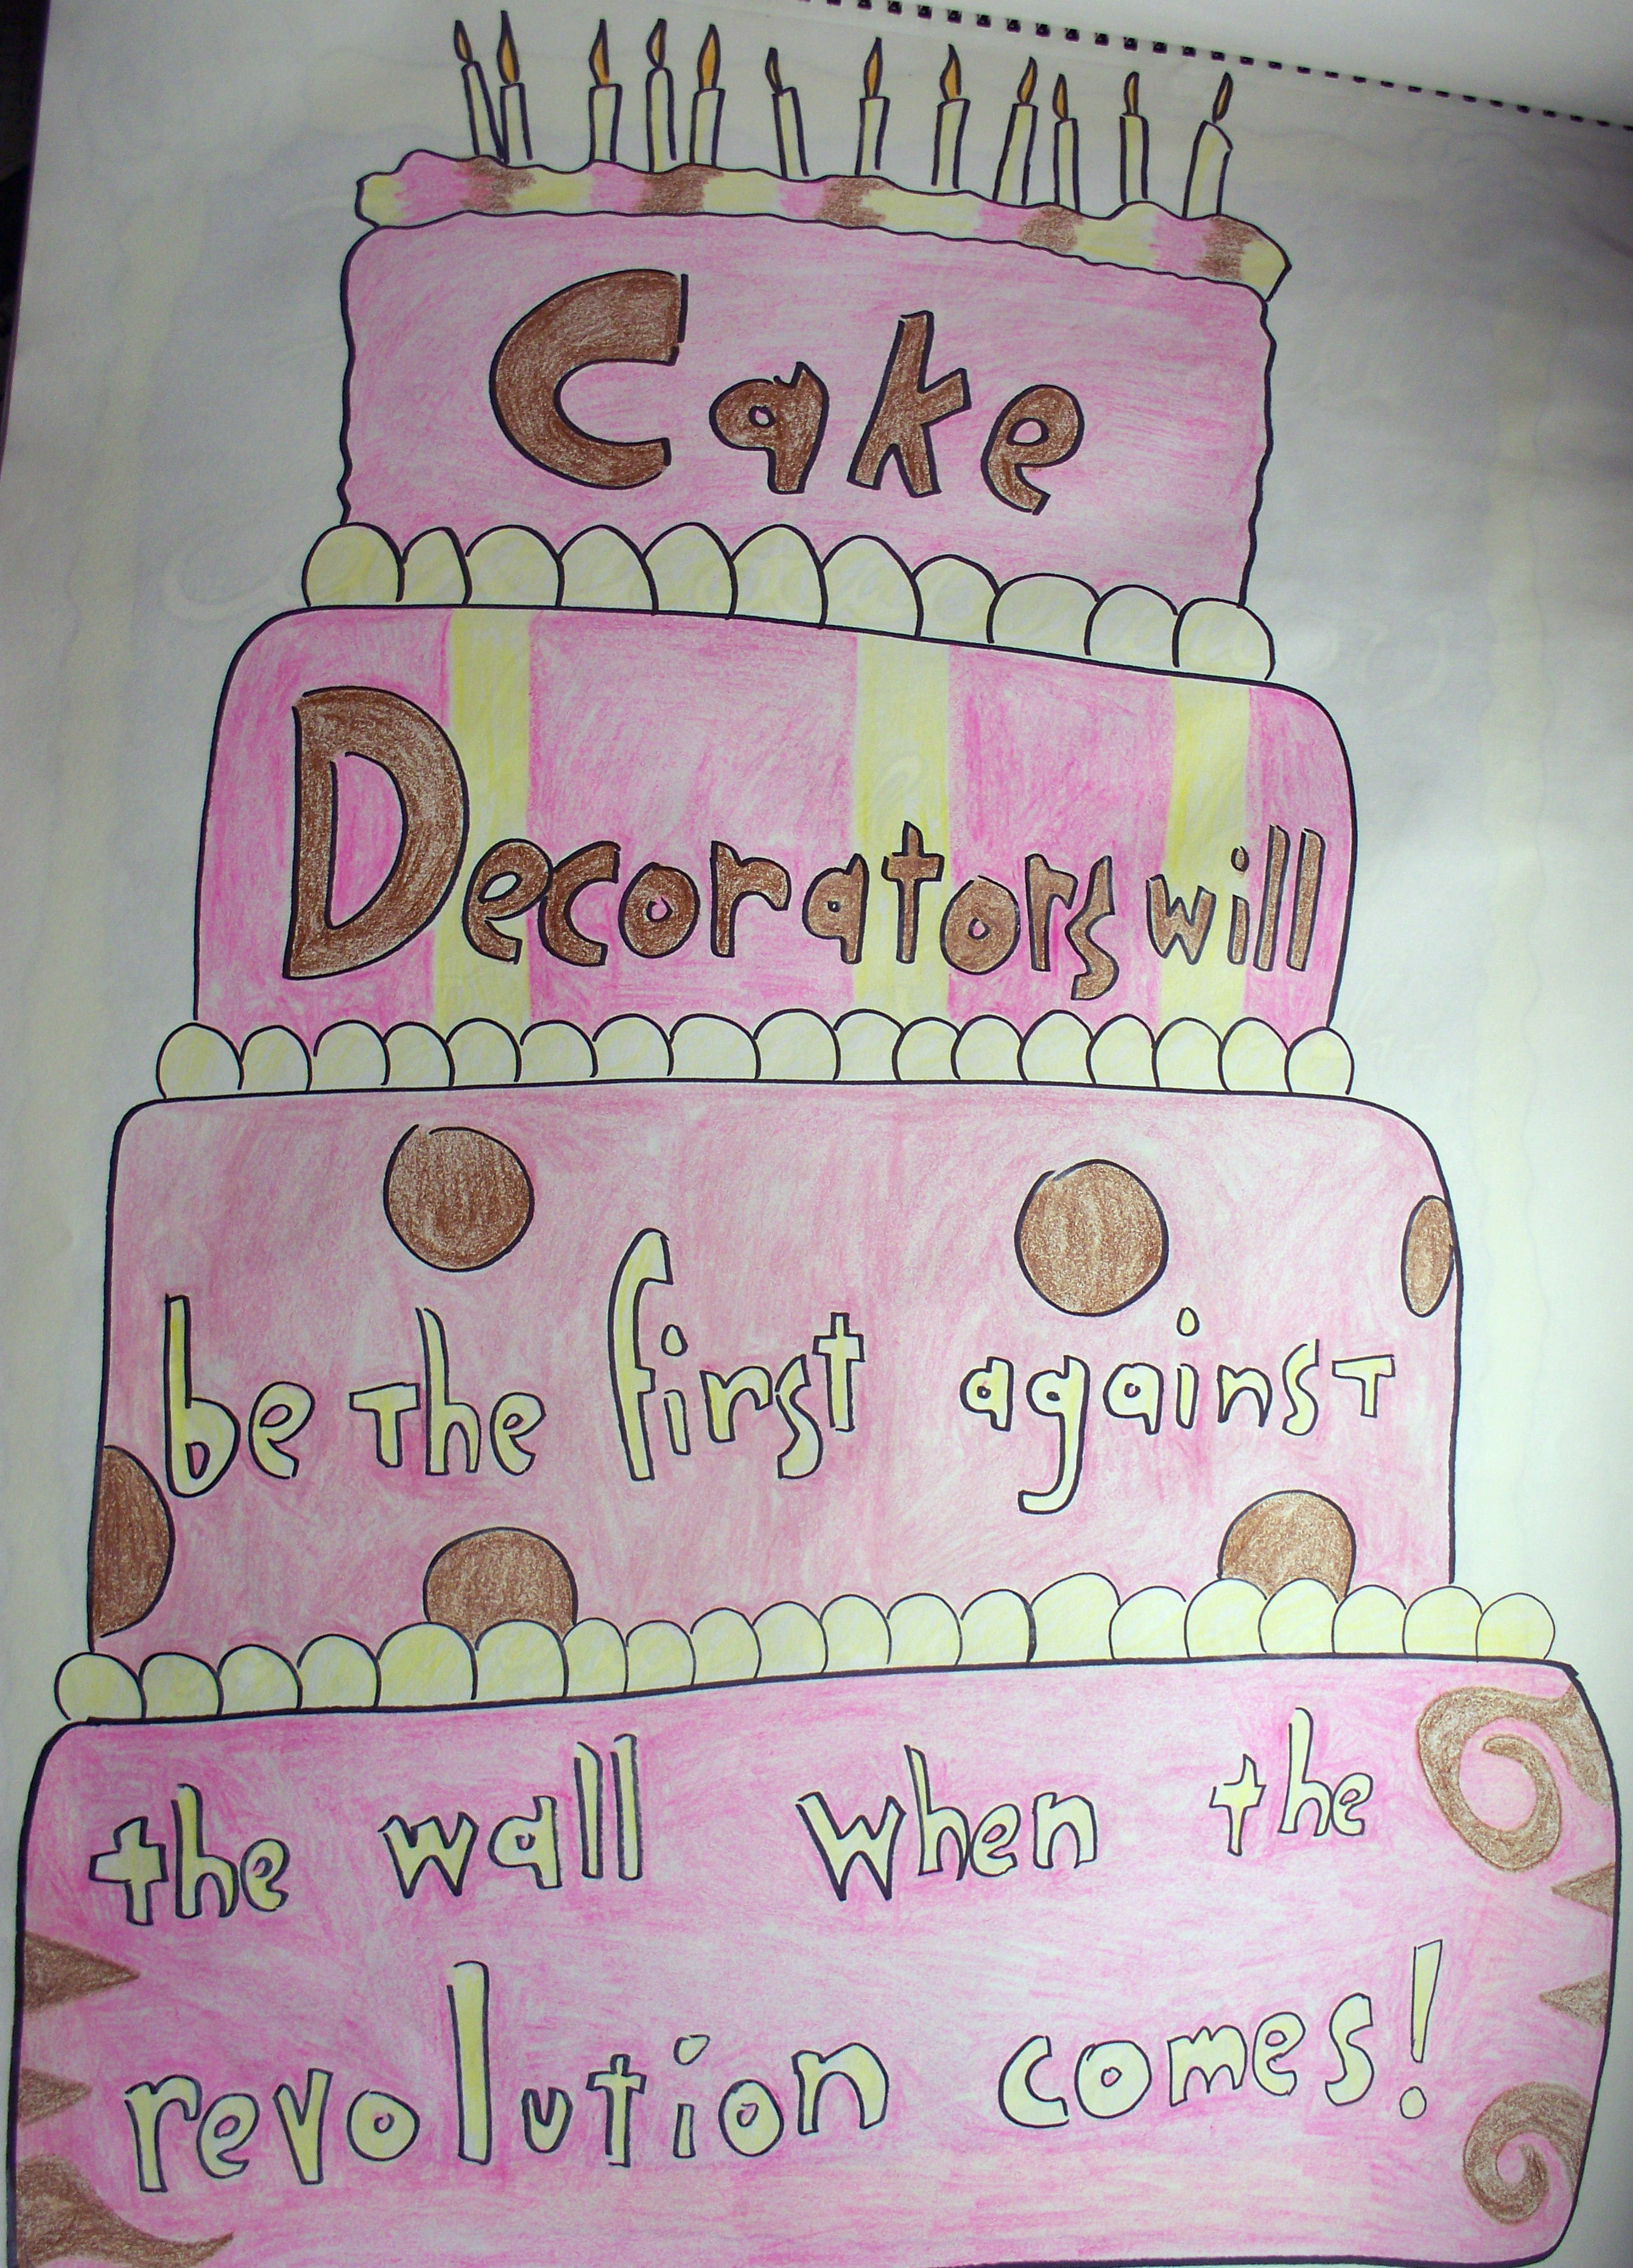 The Cake Decorating Joke Isaac and the Awkward Situations